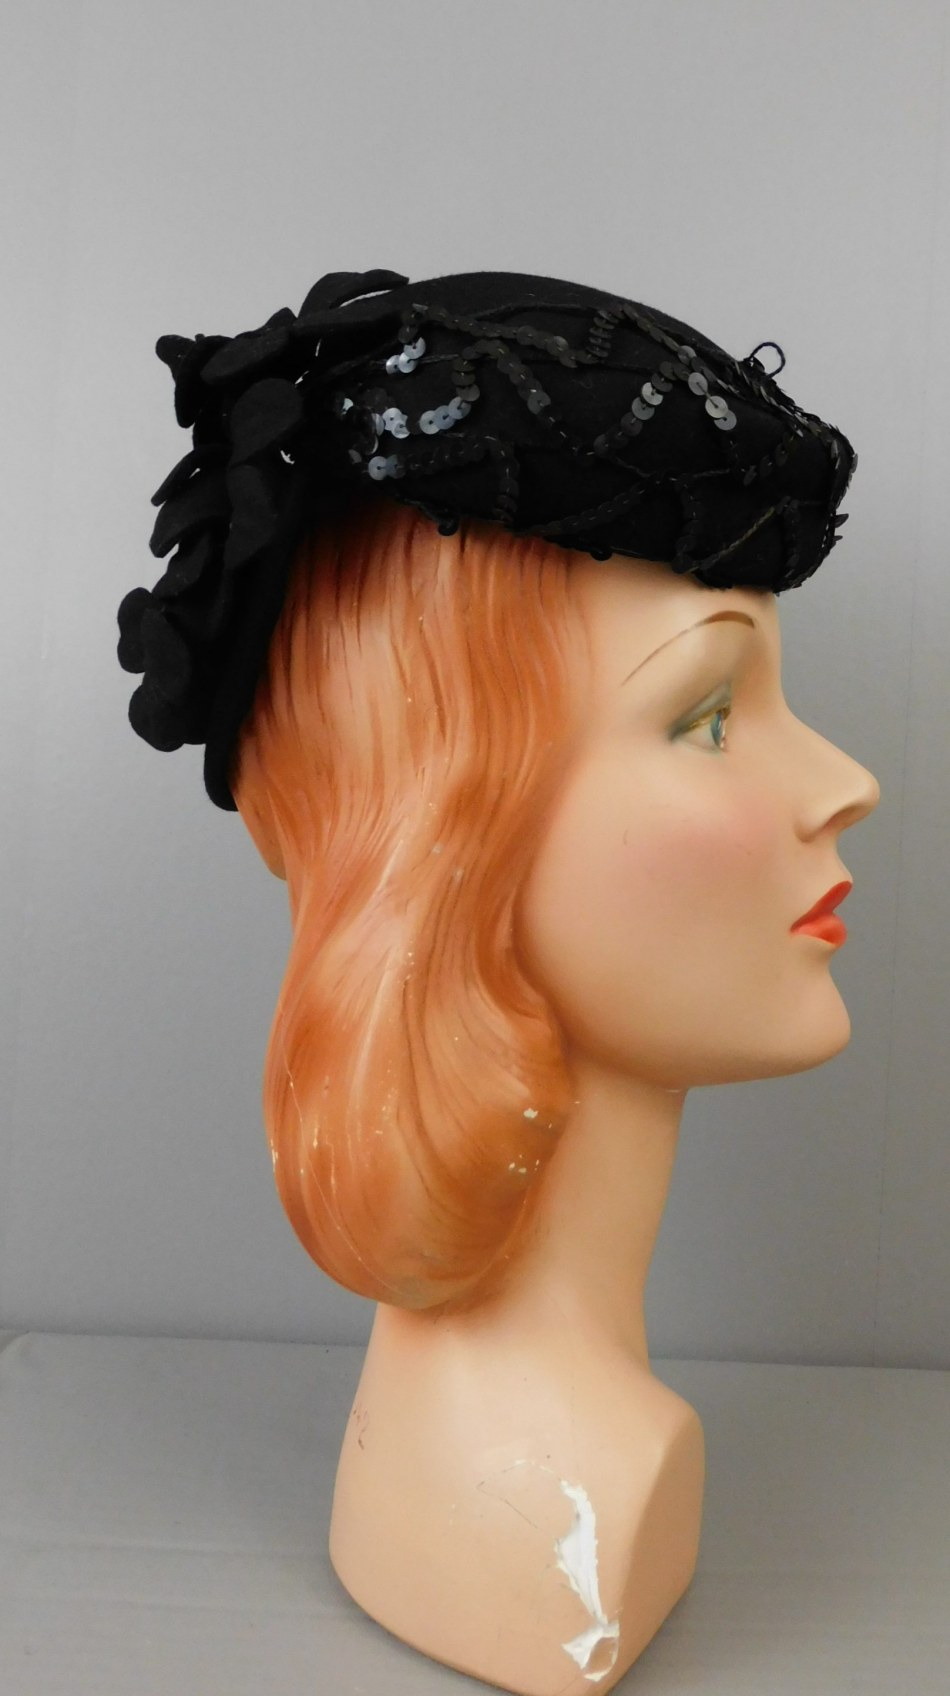 Vintage 1940s Black Felt Topper Hat Flowers and Sequins, with Ring